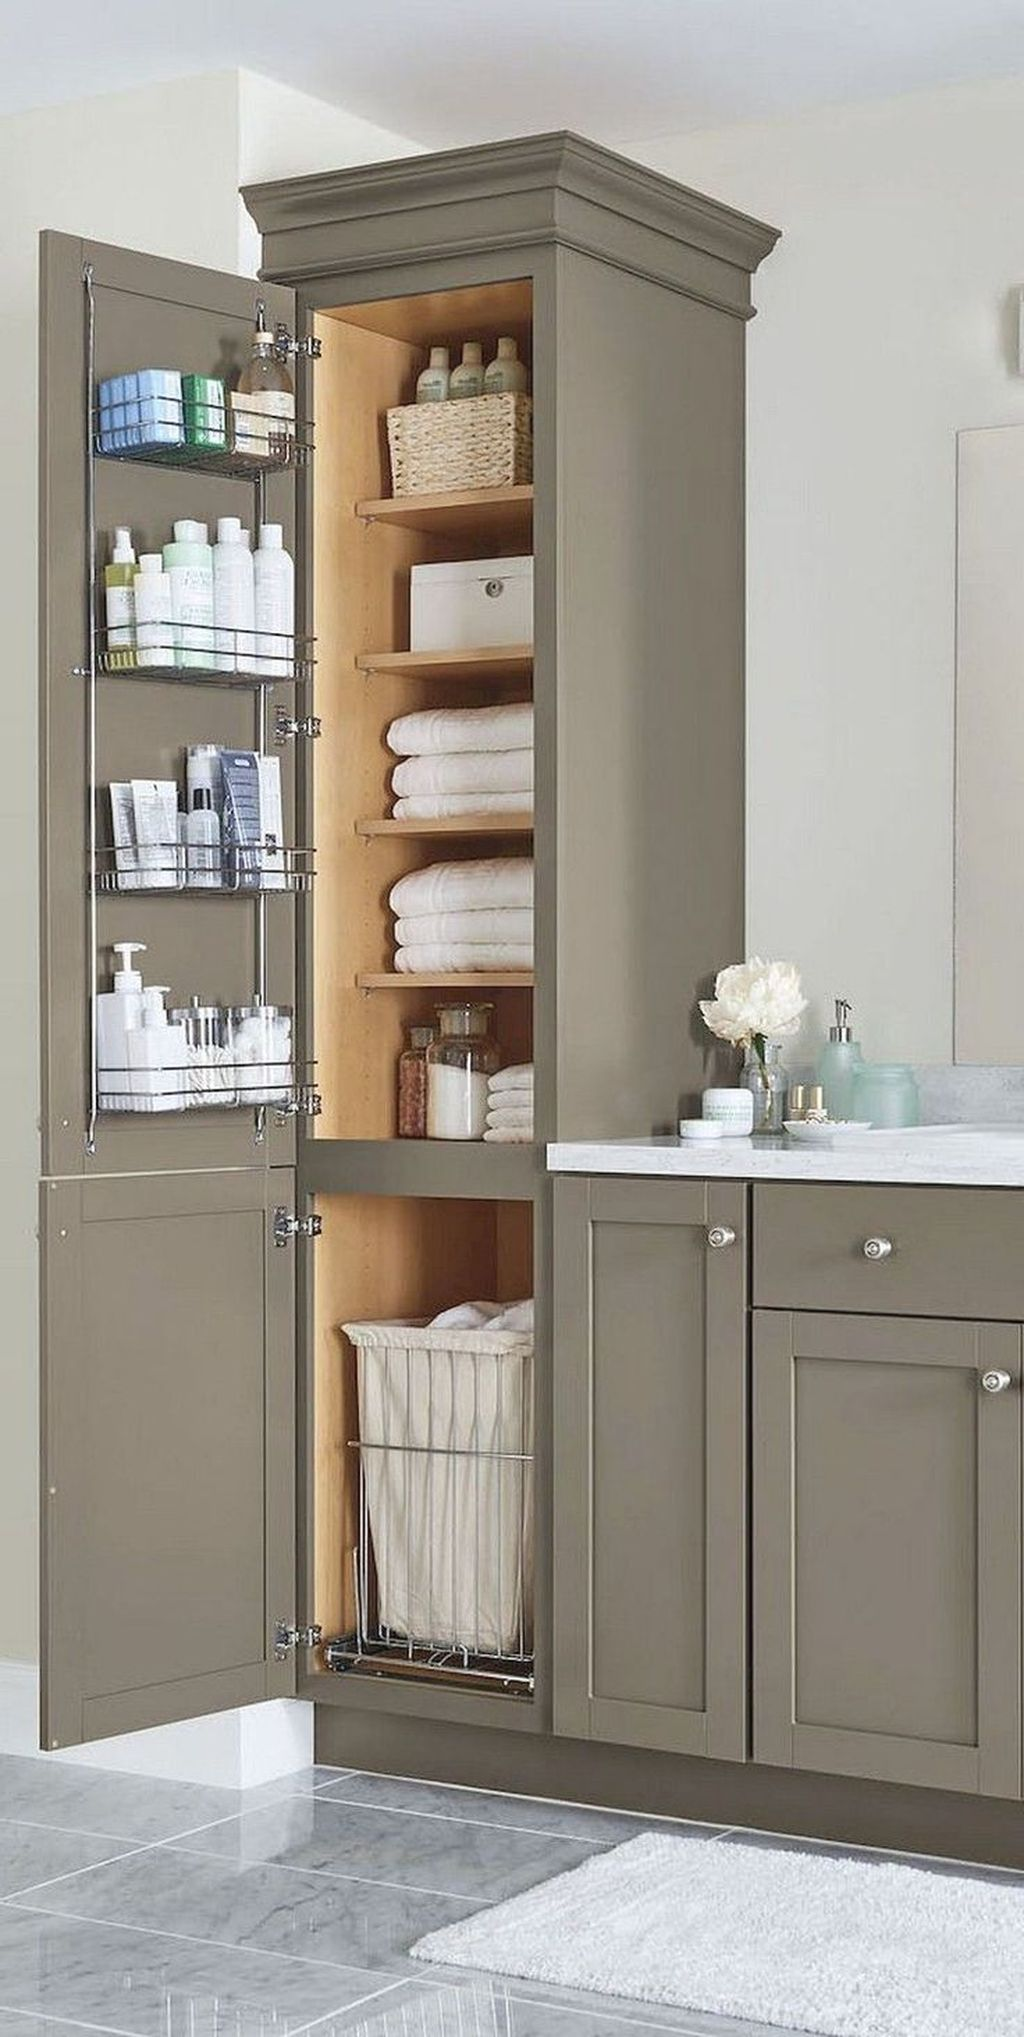 Stunning Bathroom Storage Design Ideas 11